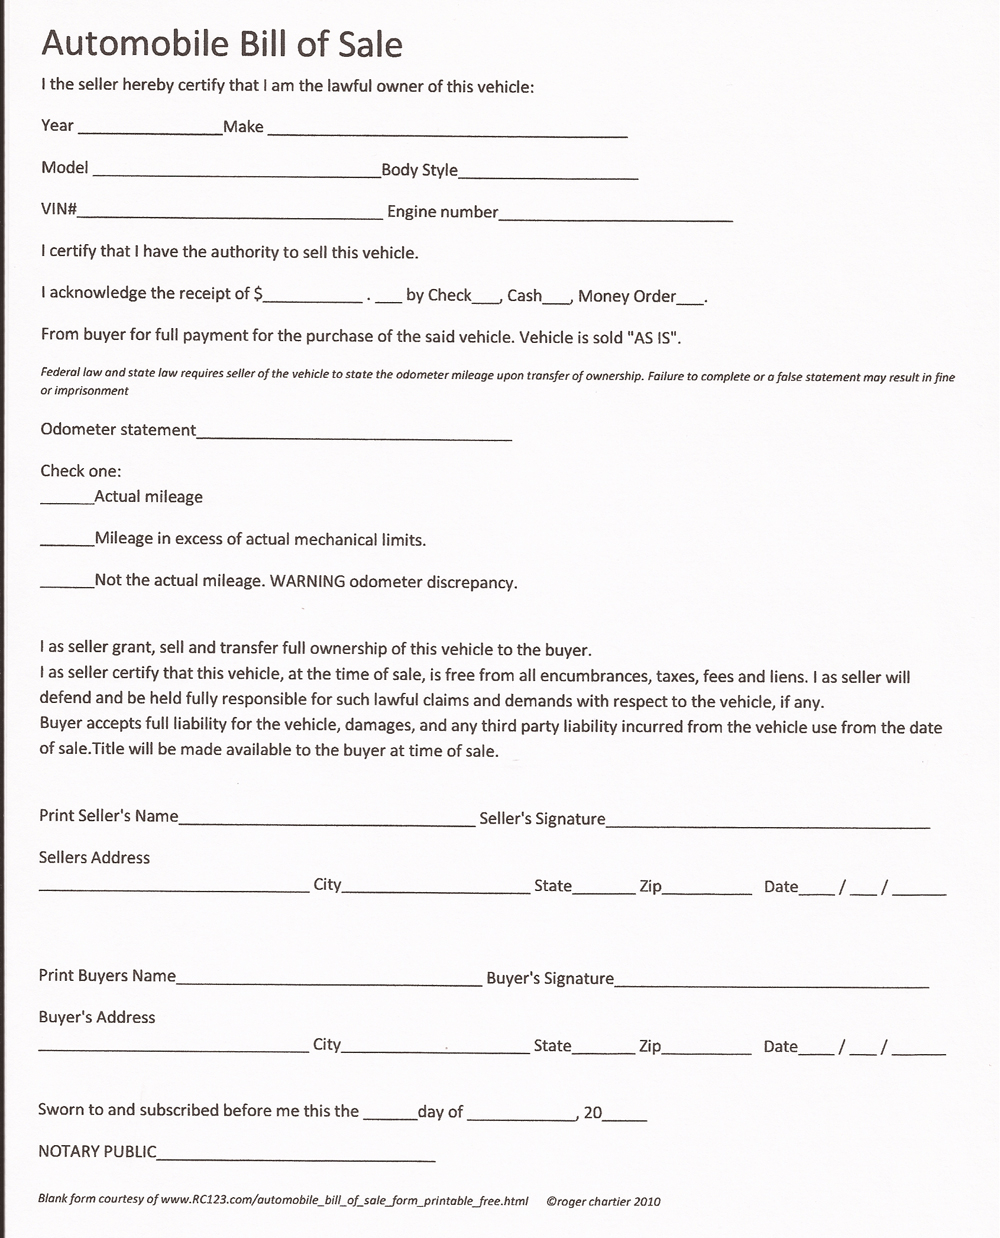 Bill Of Sale For A Car - Free Printable Documents